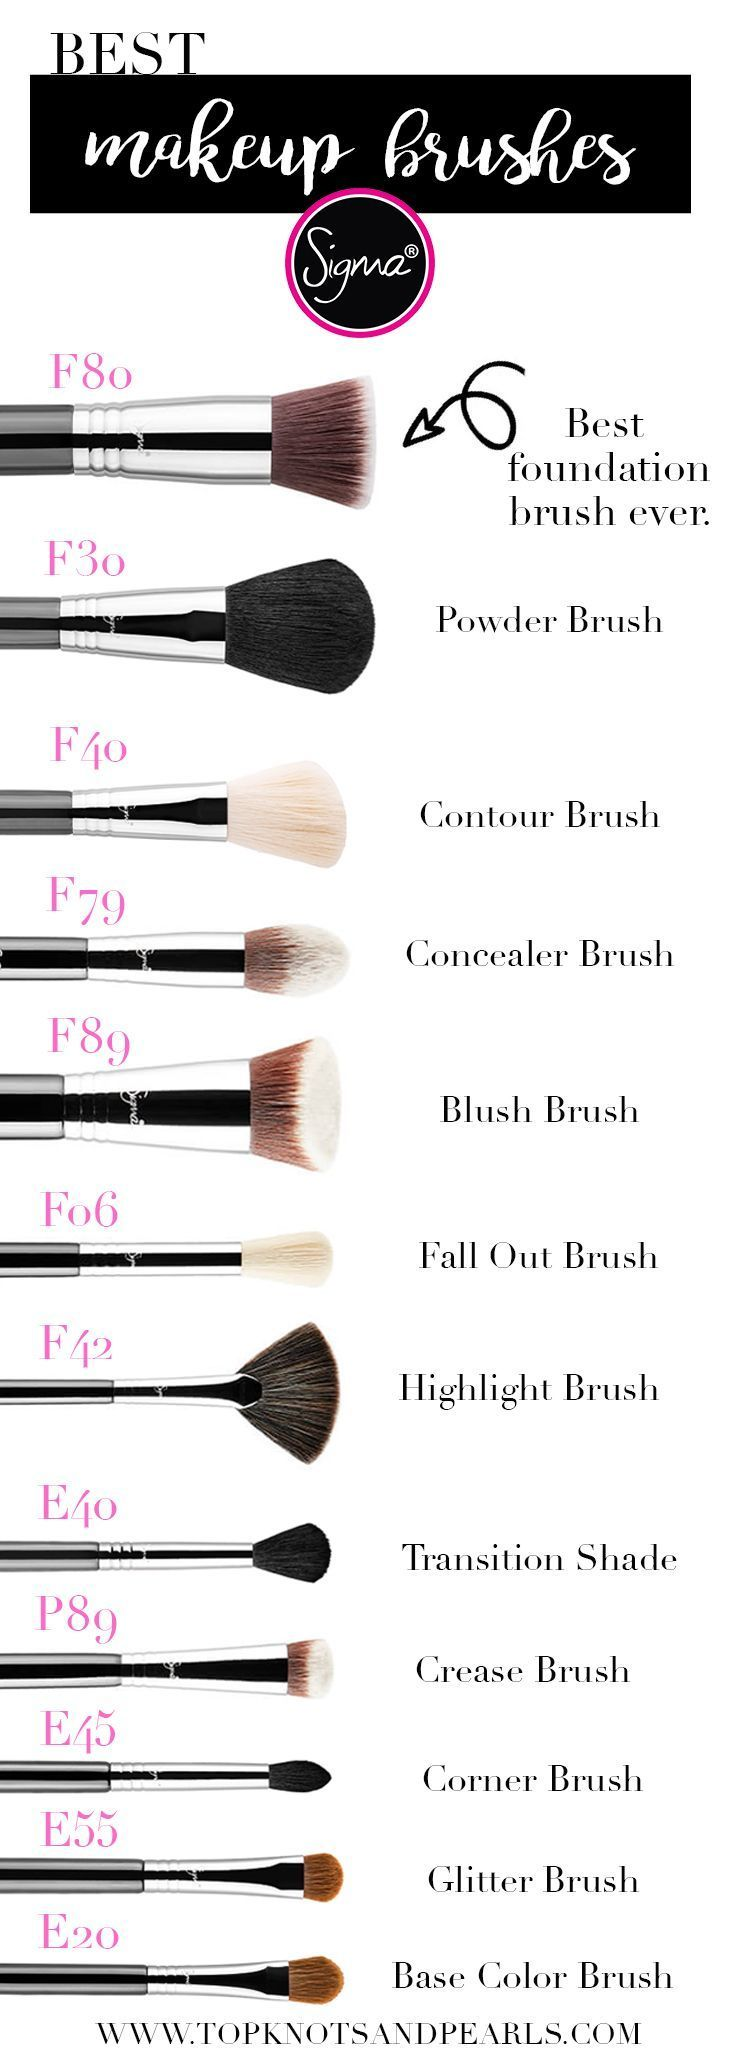 The Best of Sigma Makeup Brushes for a full face look